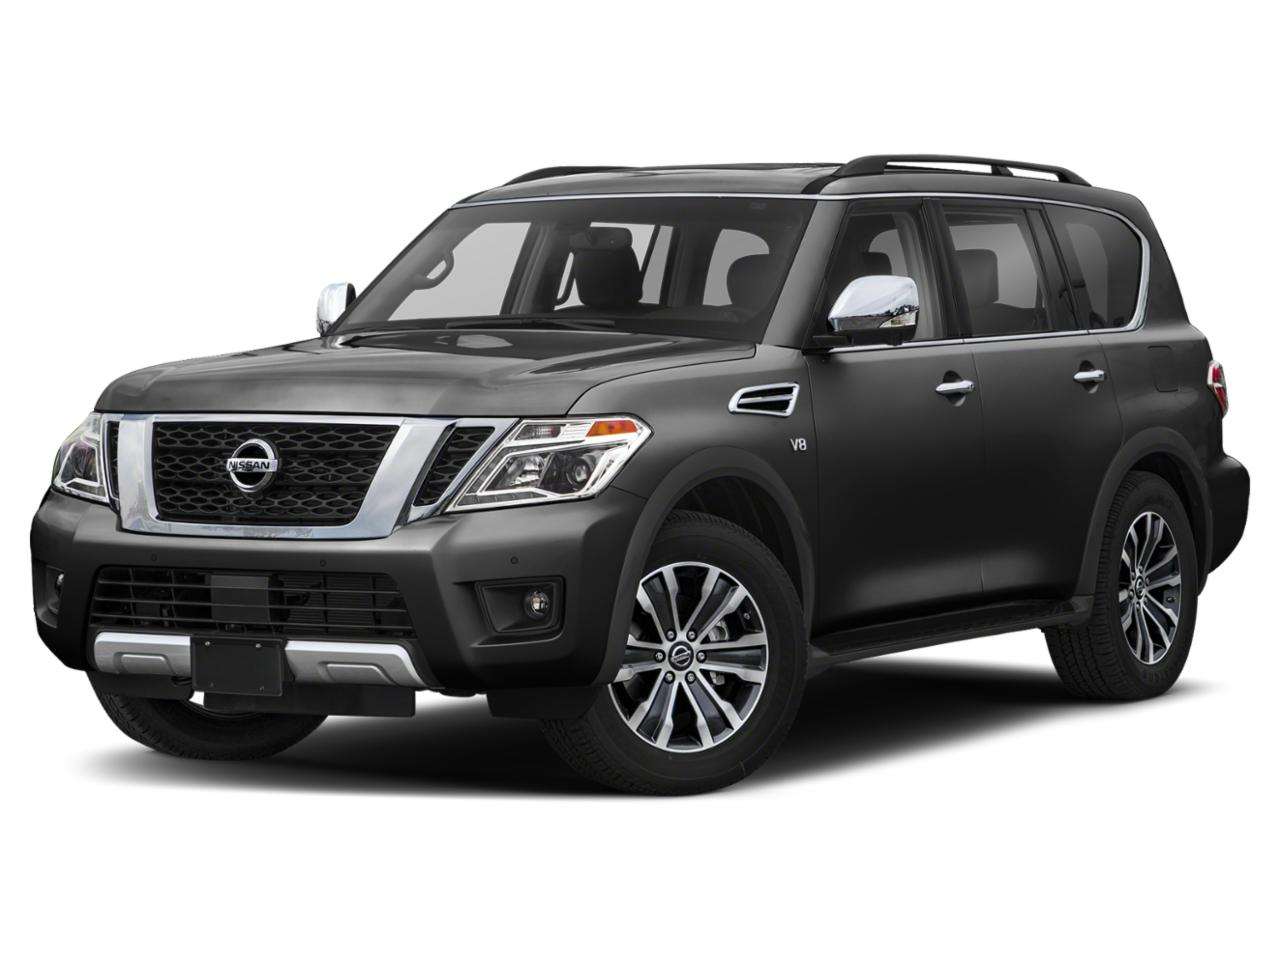 2019 Nissan Armada Vehicle Photo in Broussard, LA 70518